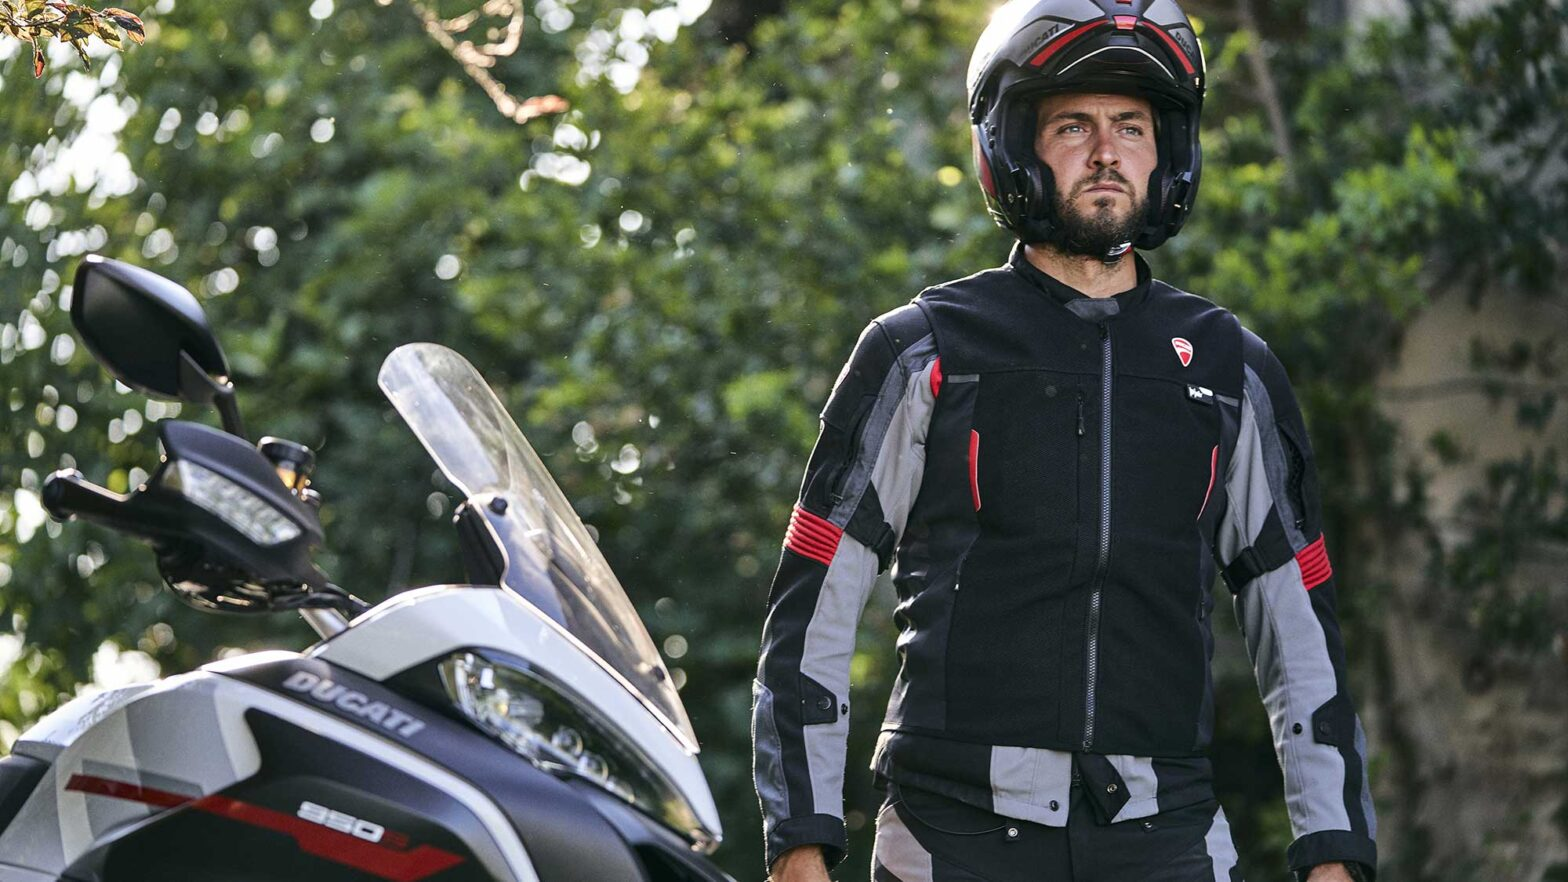 Ducati Smart Jacket Airbag-equipped Vest